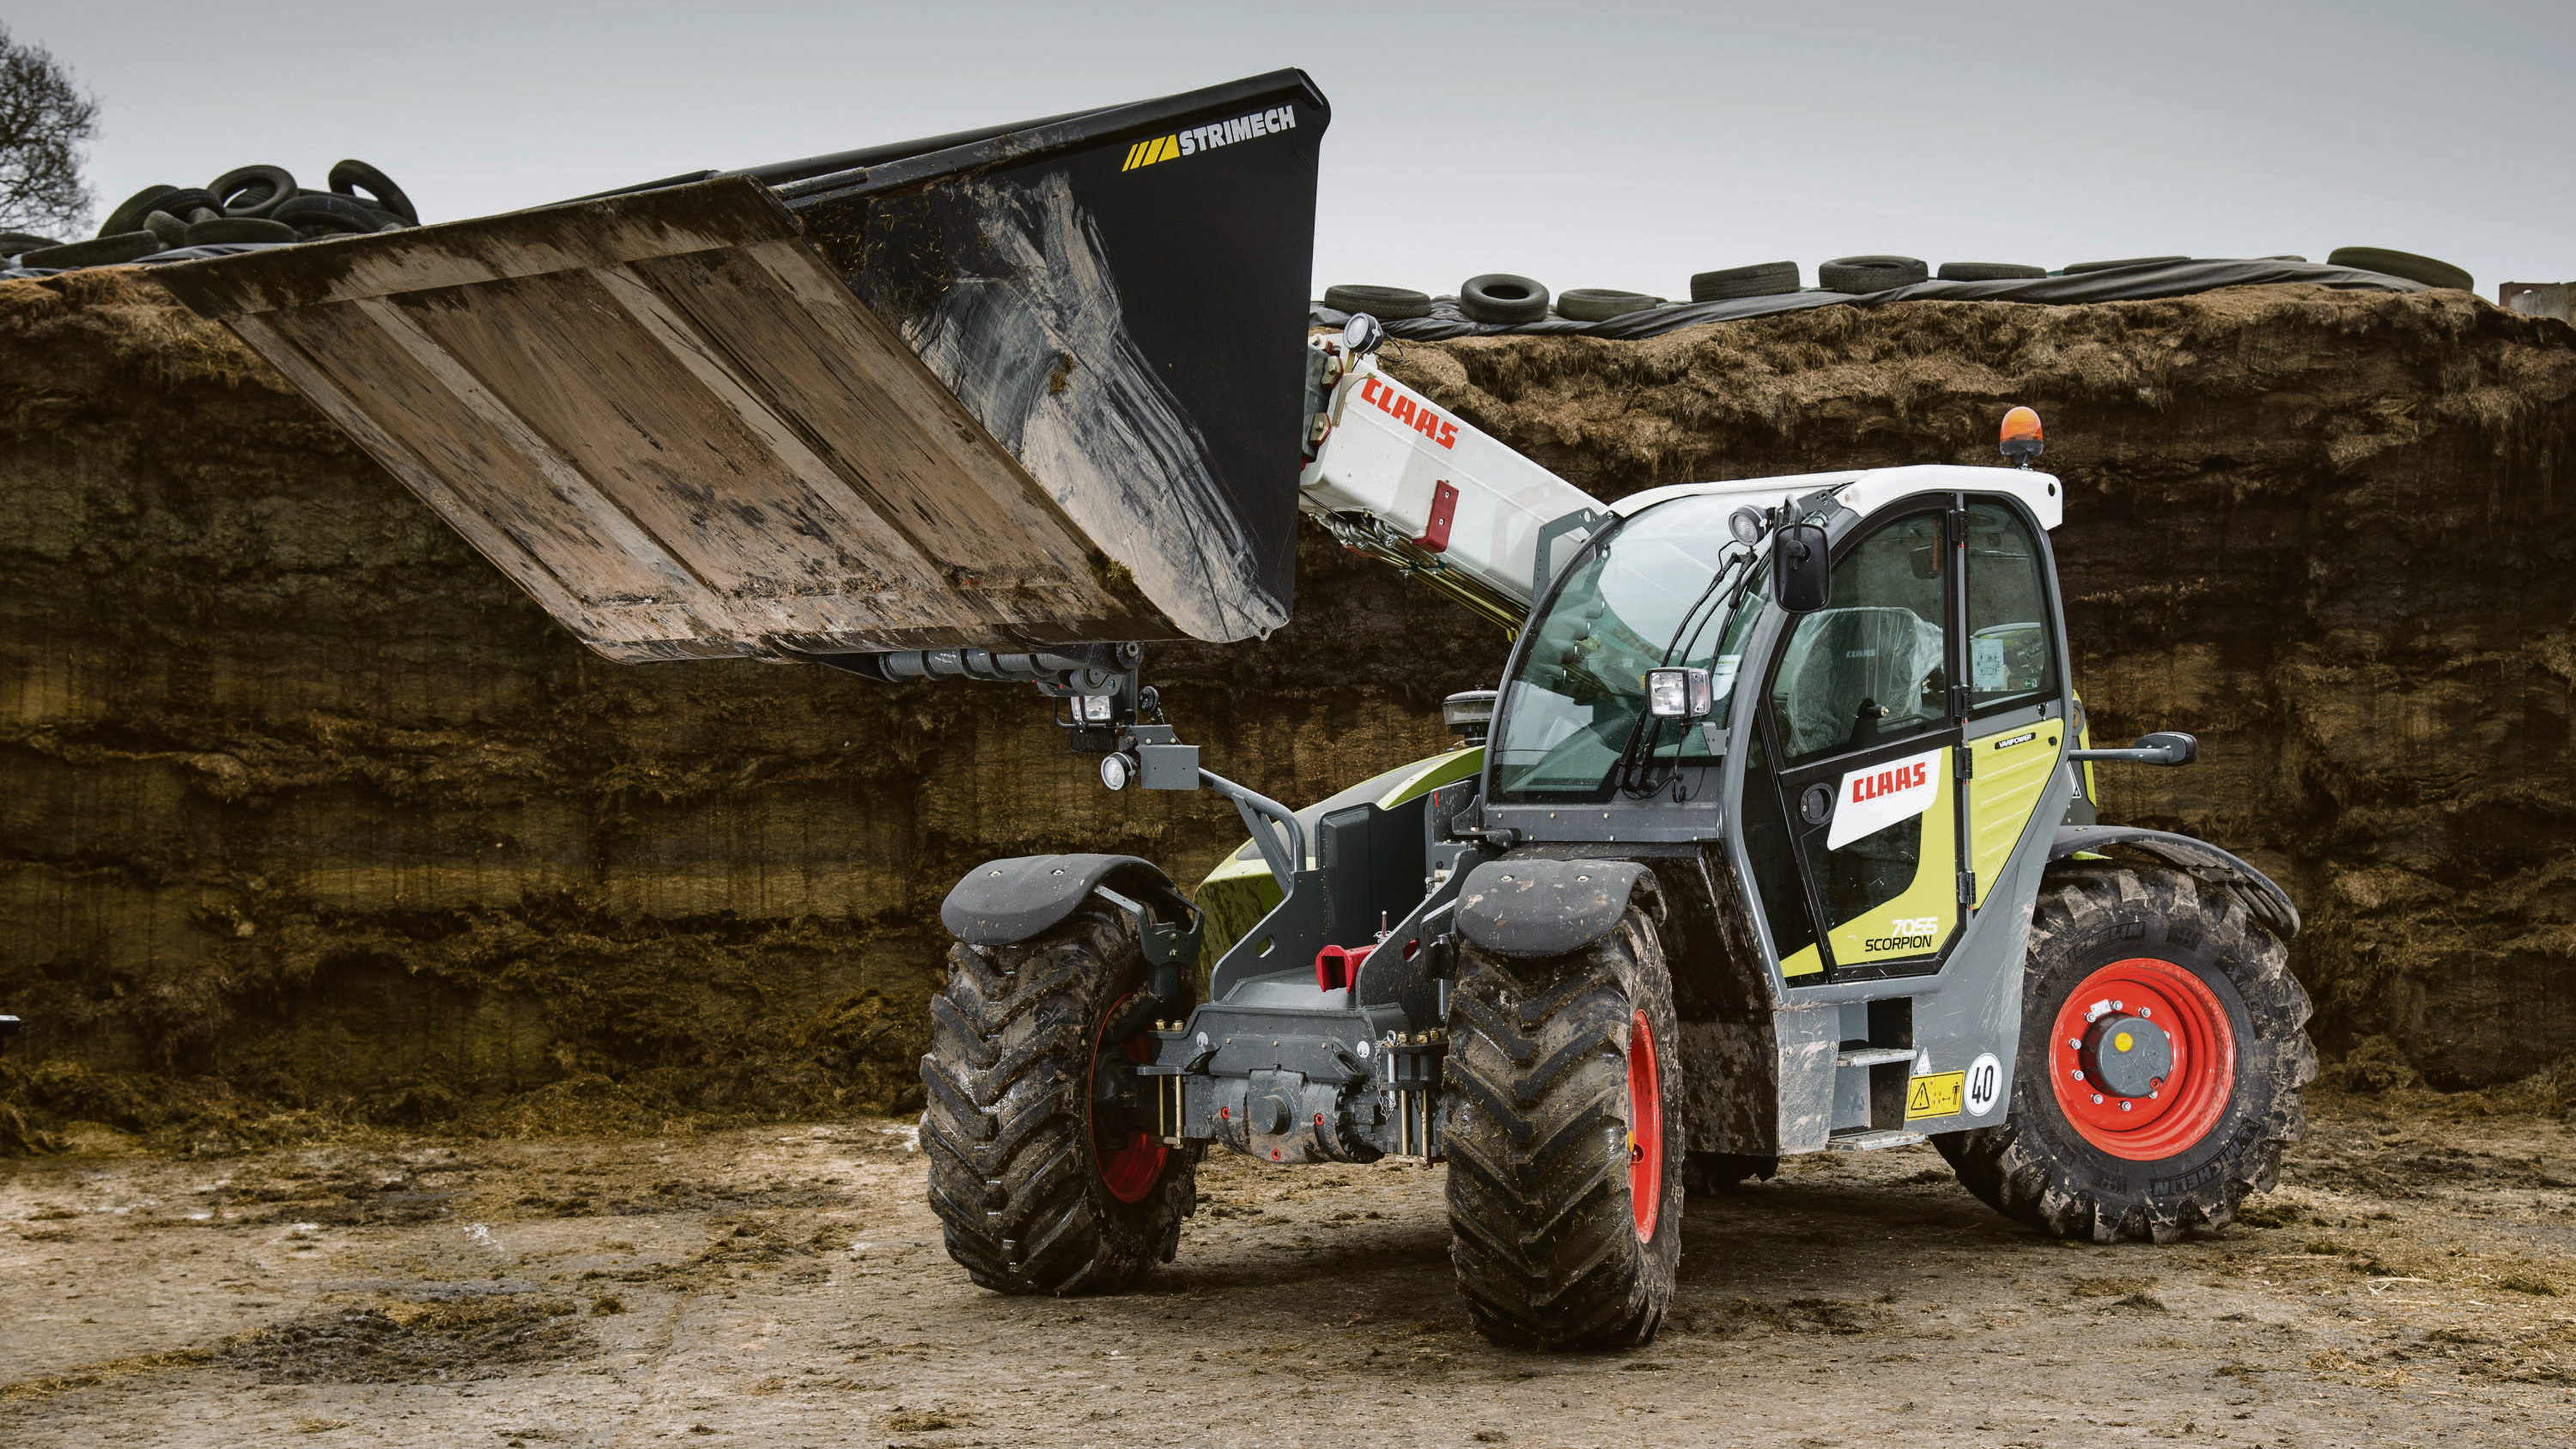 On test: New Claas Scorpion telehandlers offer plenty of functionality